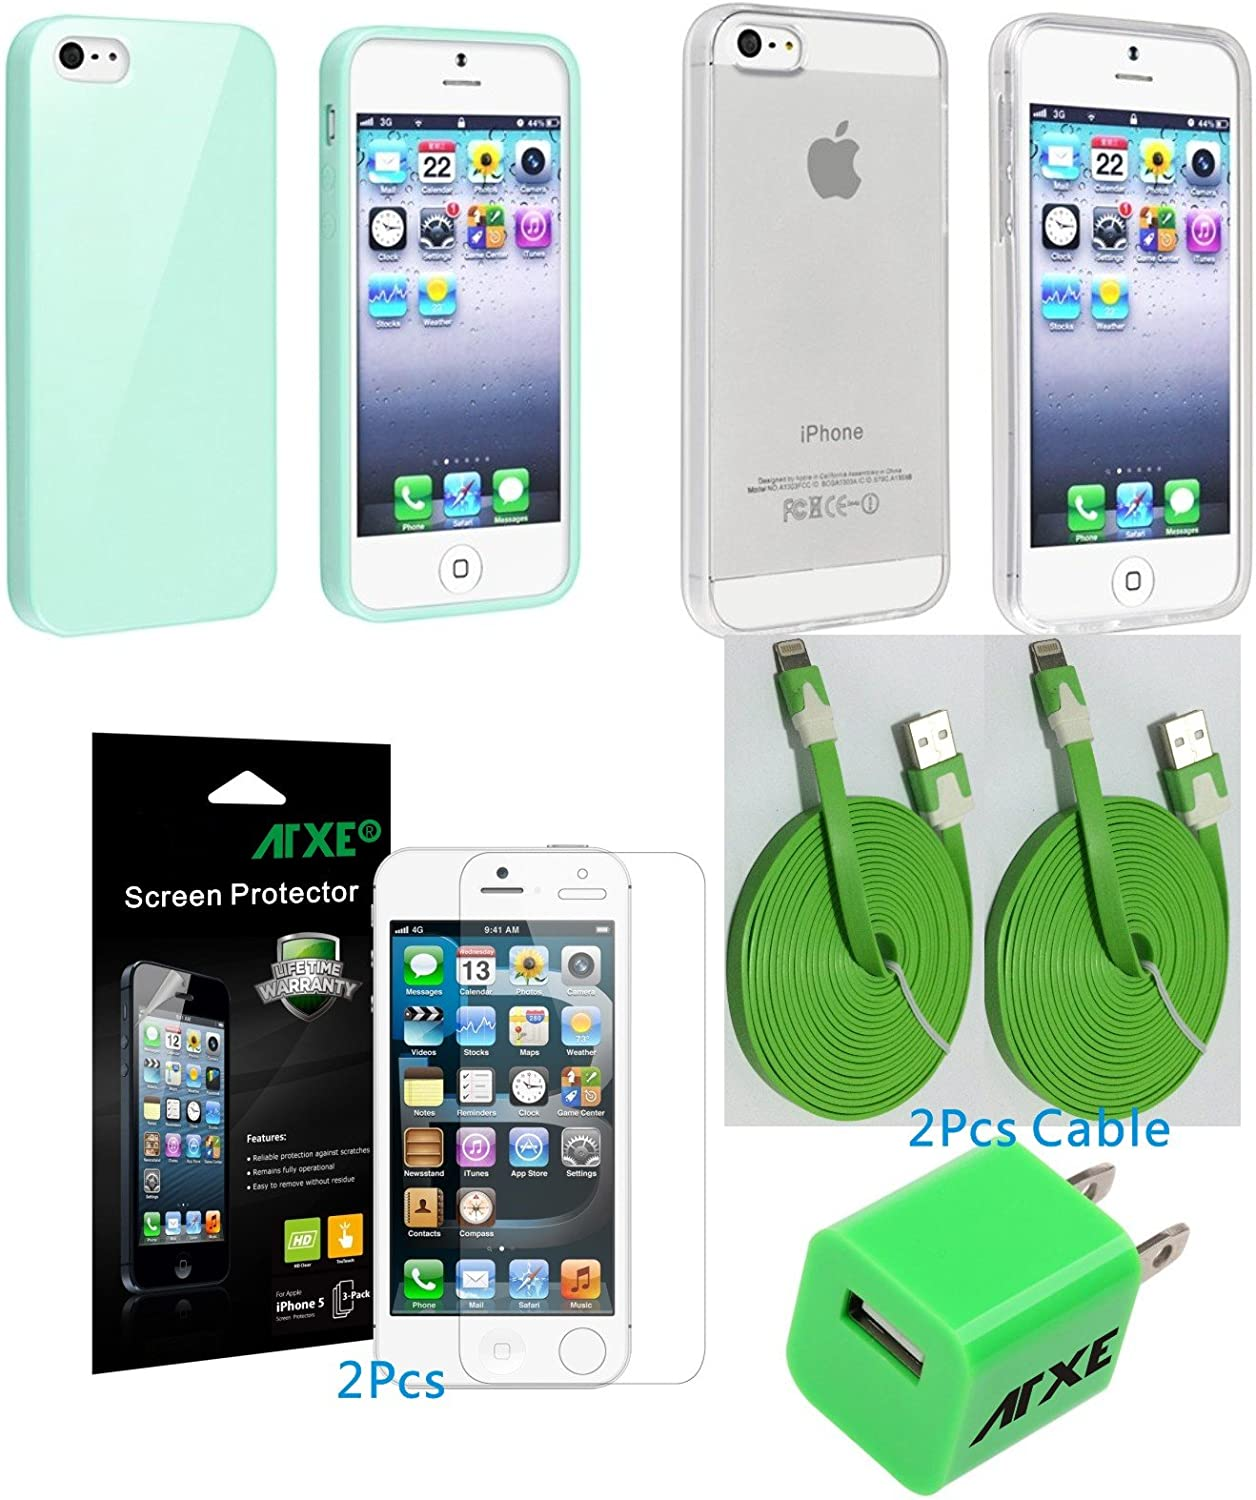 eTECH Collection 5 Pack of Anti-Glare Screen Protectors for Apple iPhone 5/5S/5C AT&T, T-Mobile, Sprint, Verizon